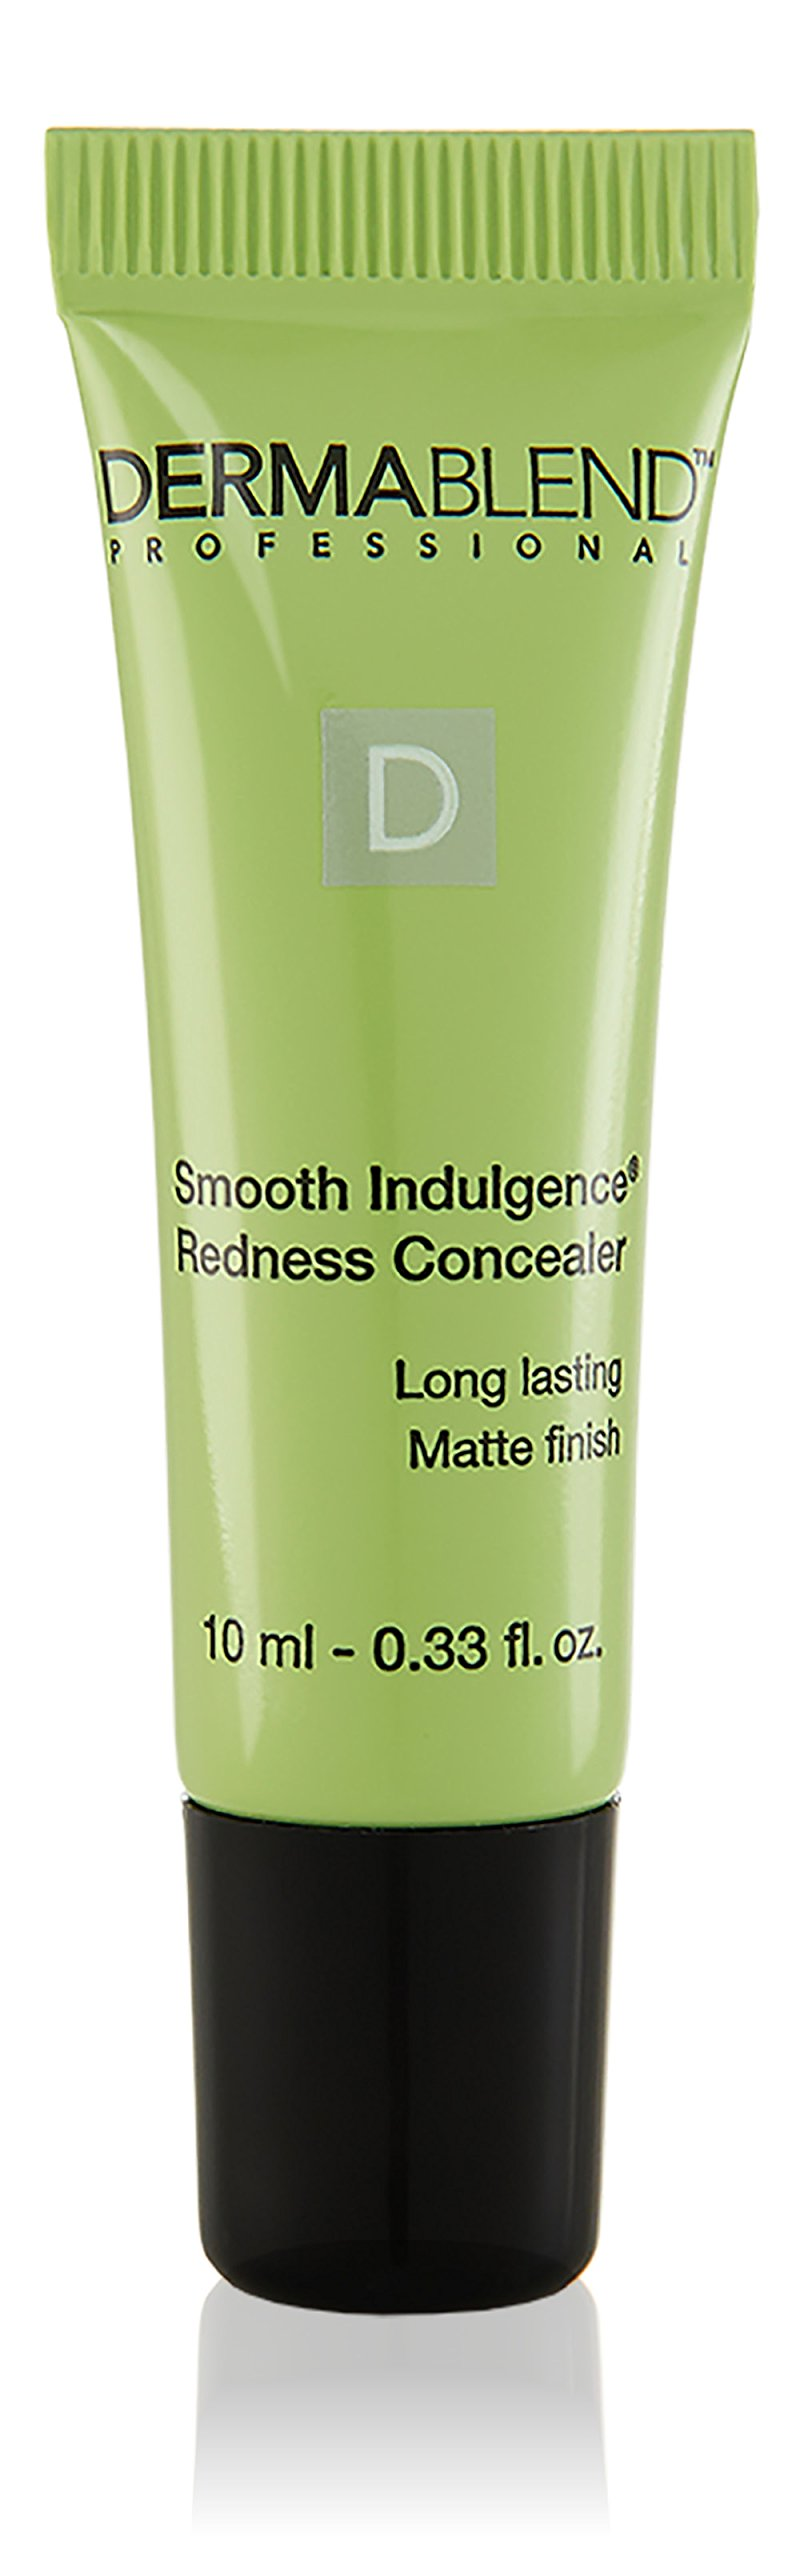 Dermablend Smooth Indulgence Redness Concealer, 0.33 Fl. Oz.